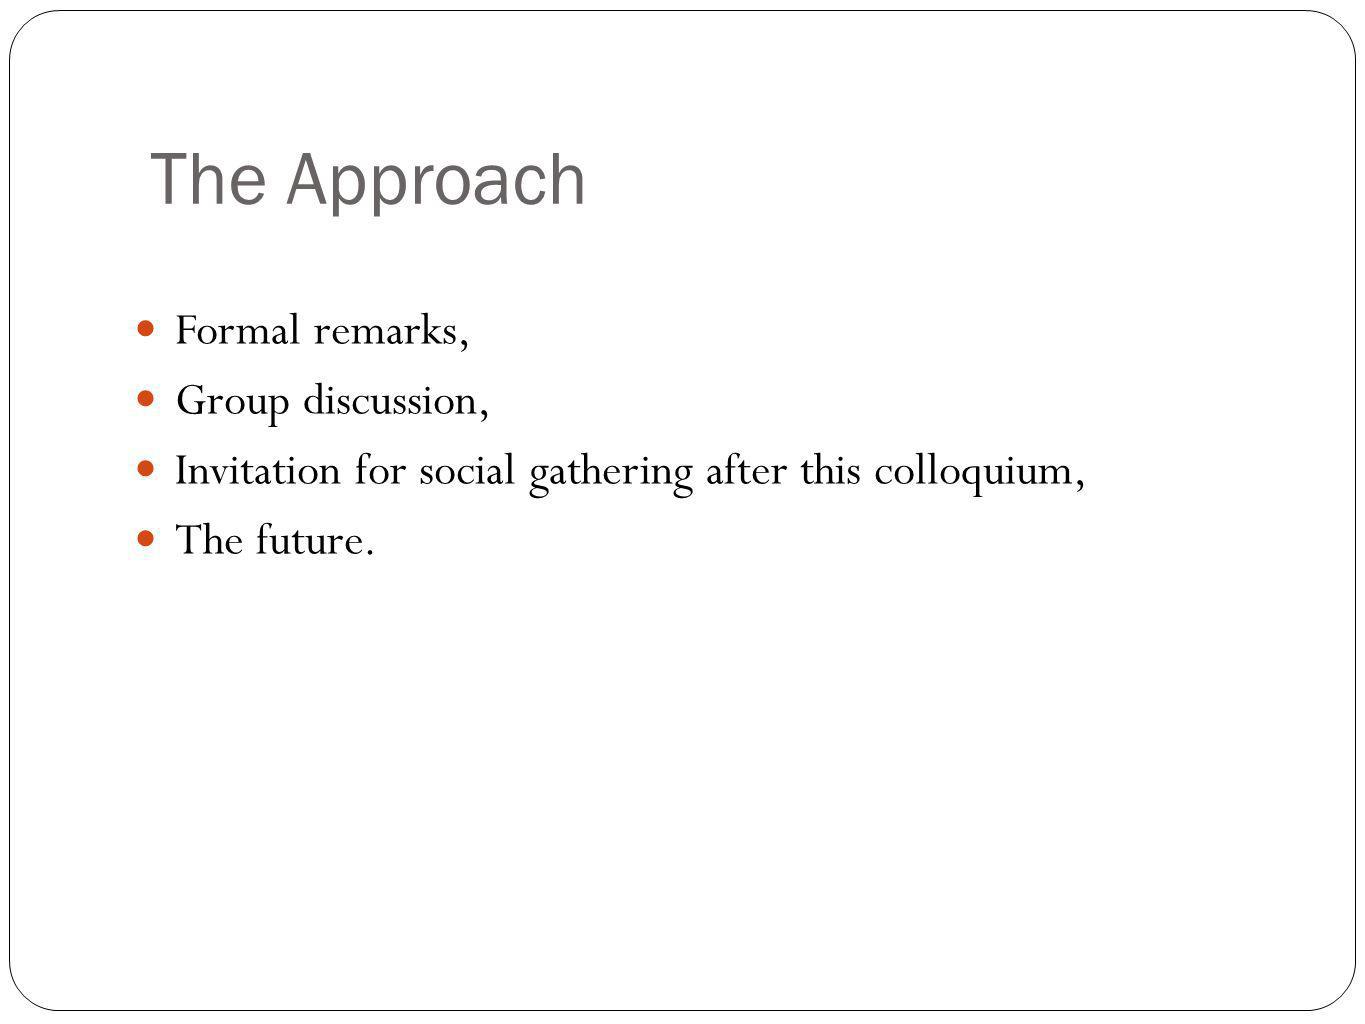 The Approach Formal remarks, Group discussion, Invitation for social gathering after this colloquium, The future.